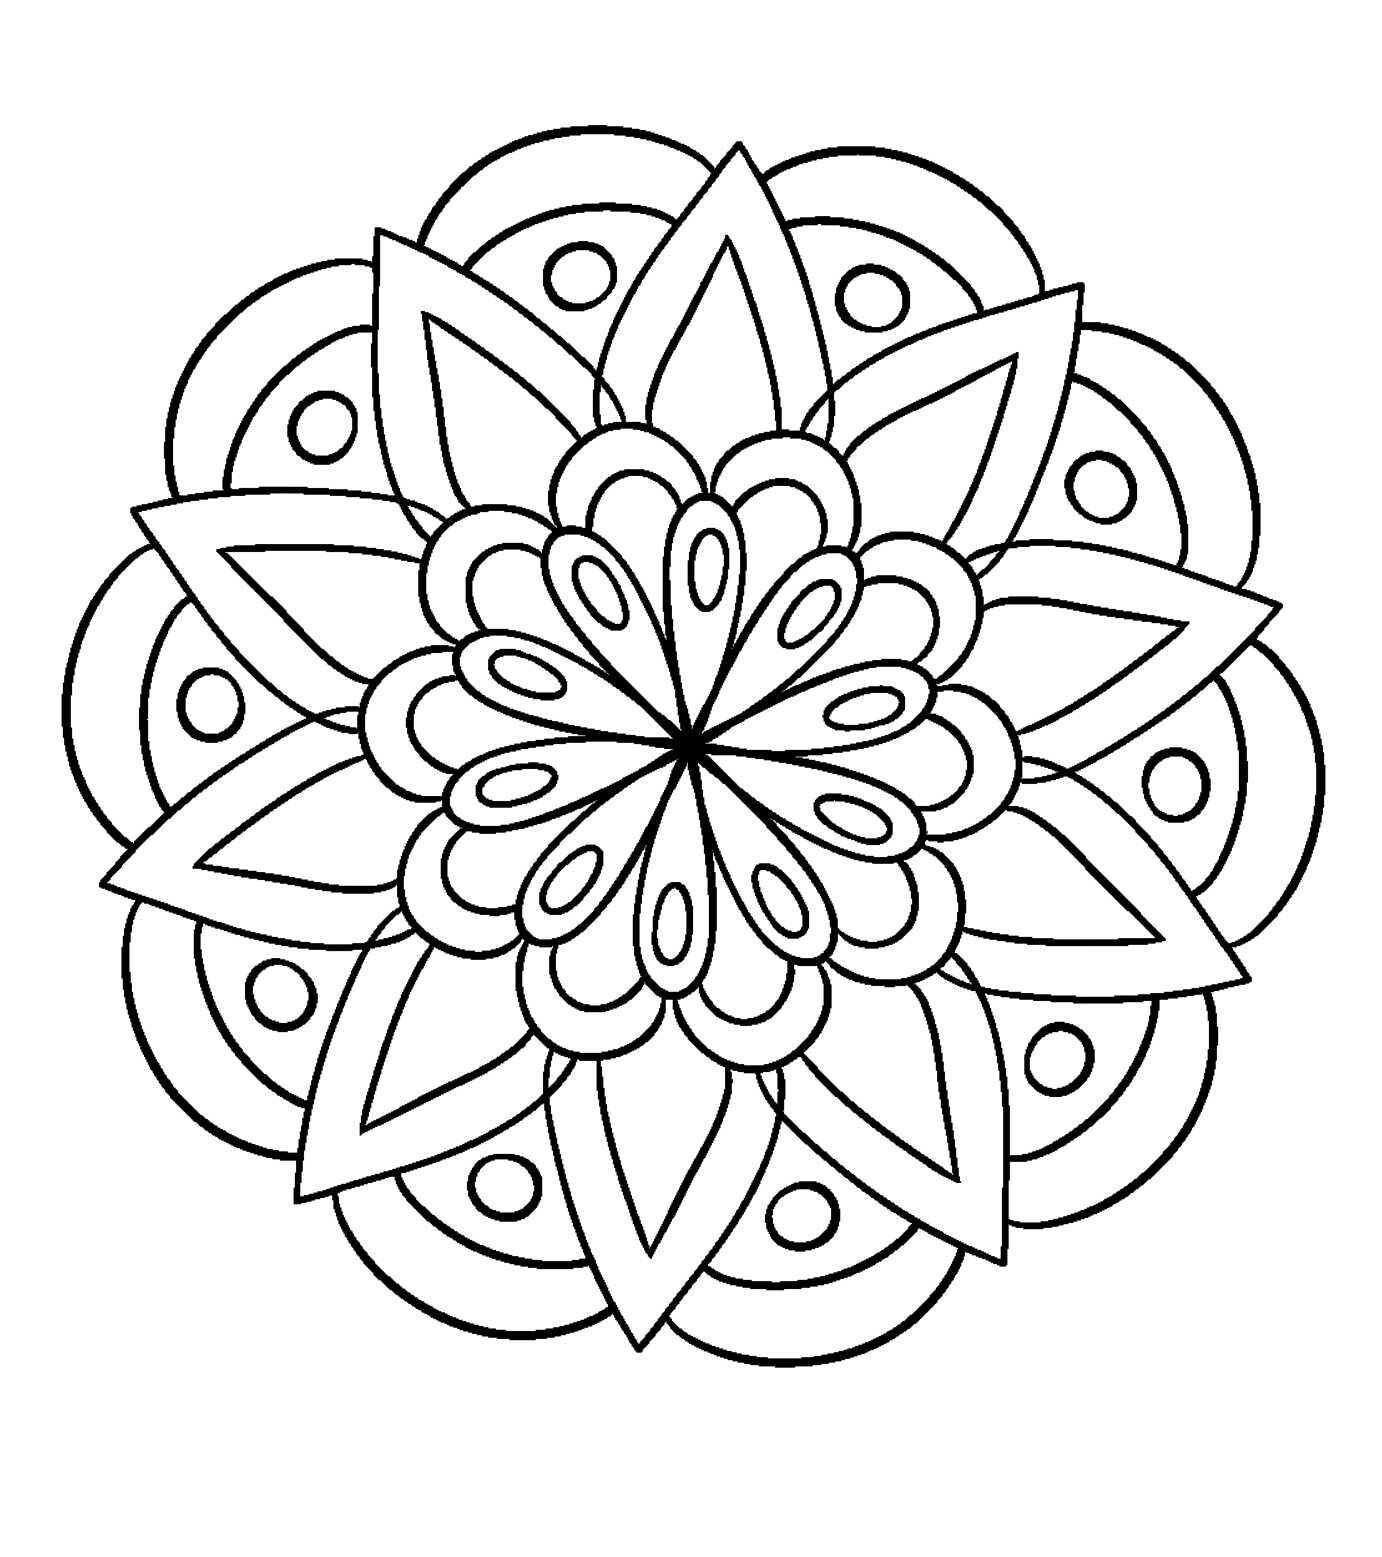 Flower Mandala Coloring Page Free Abstract Coloring Pages Mandala Coloring Pages Pattern Coloring Pages